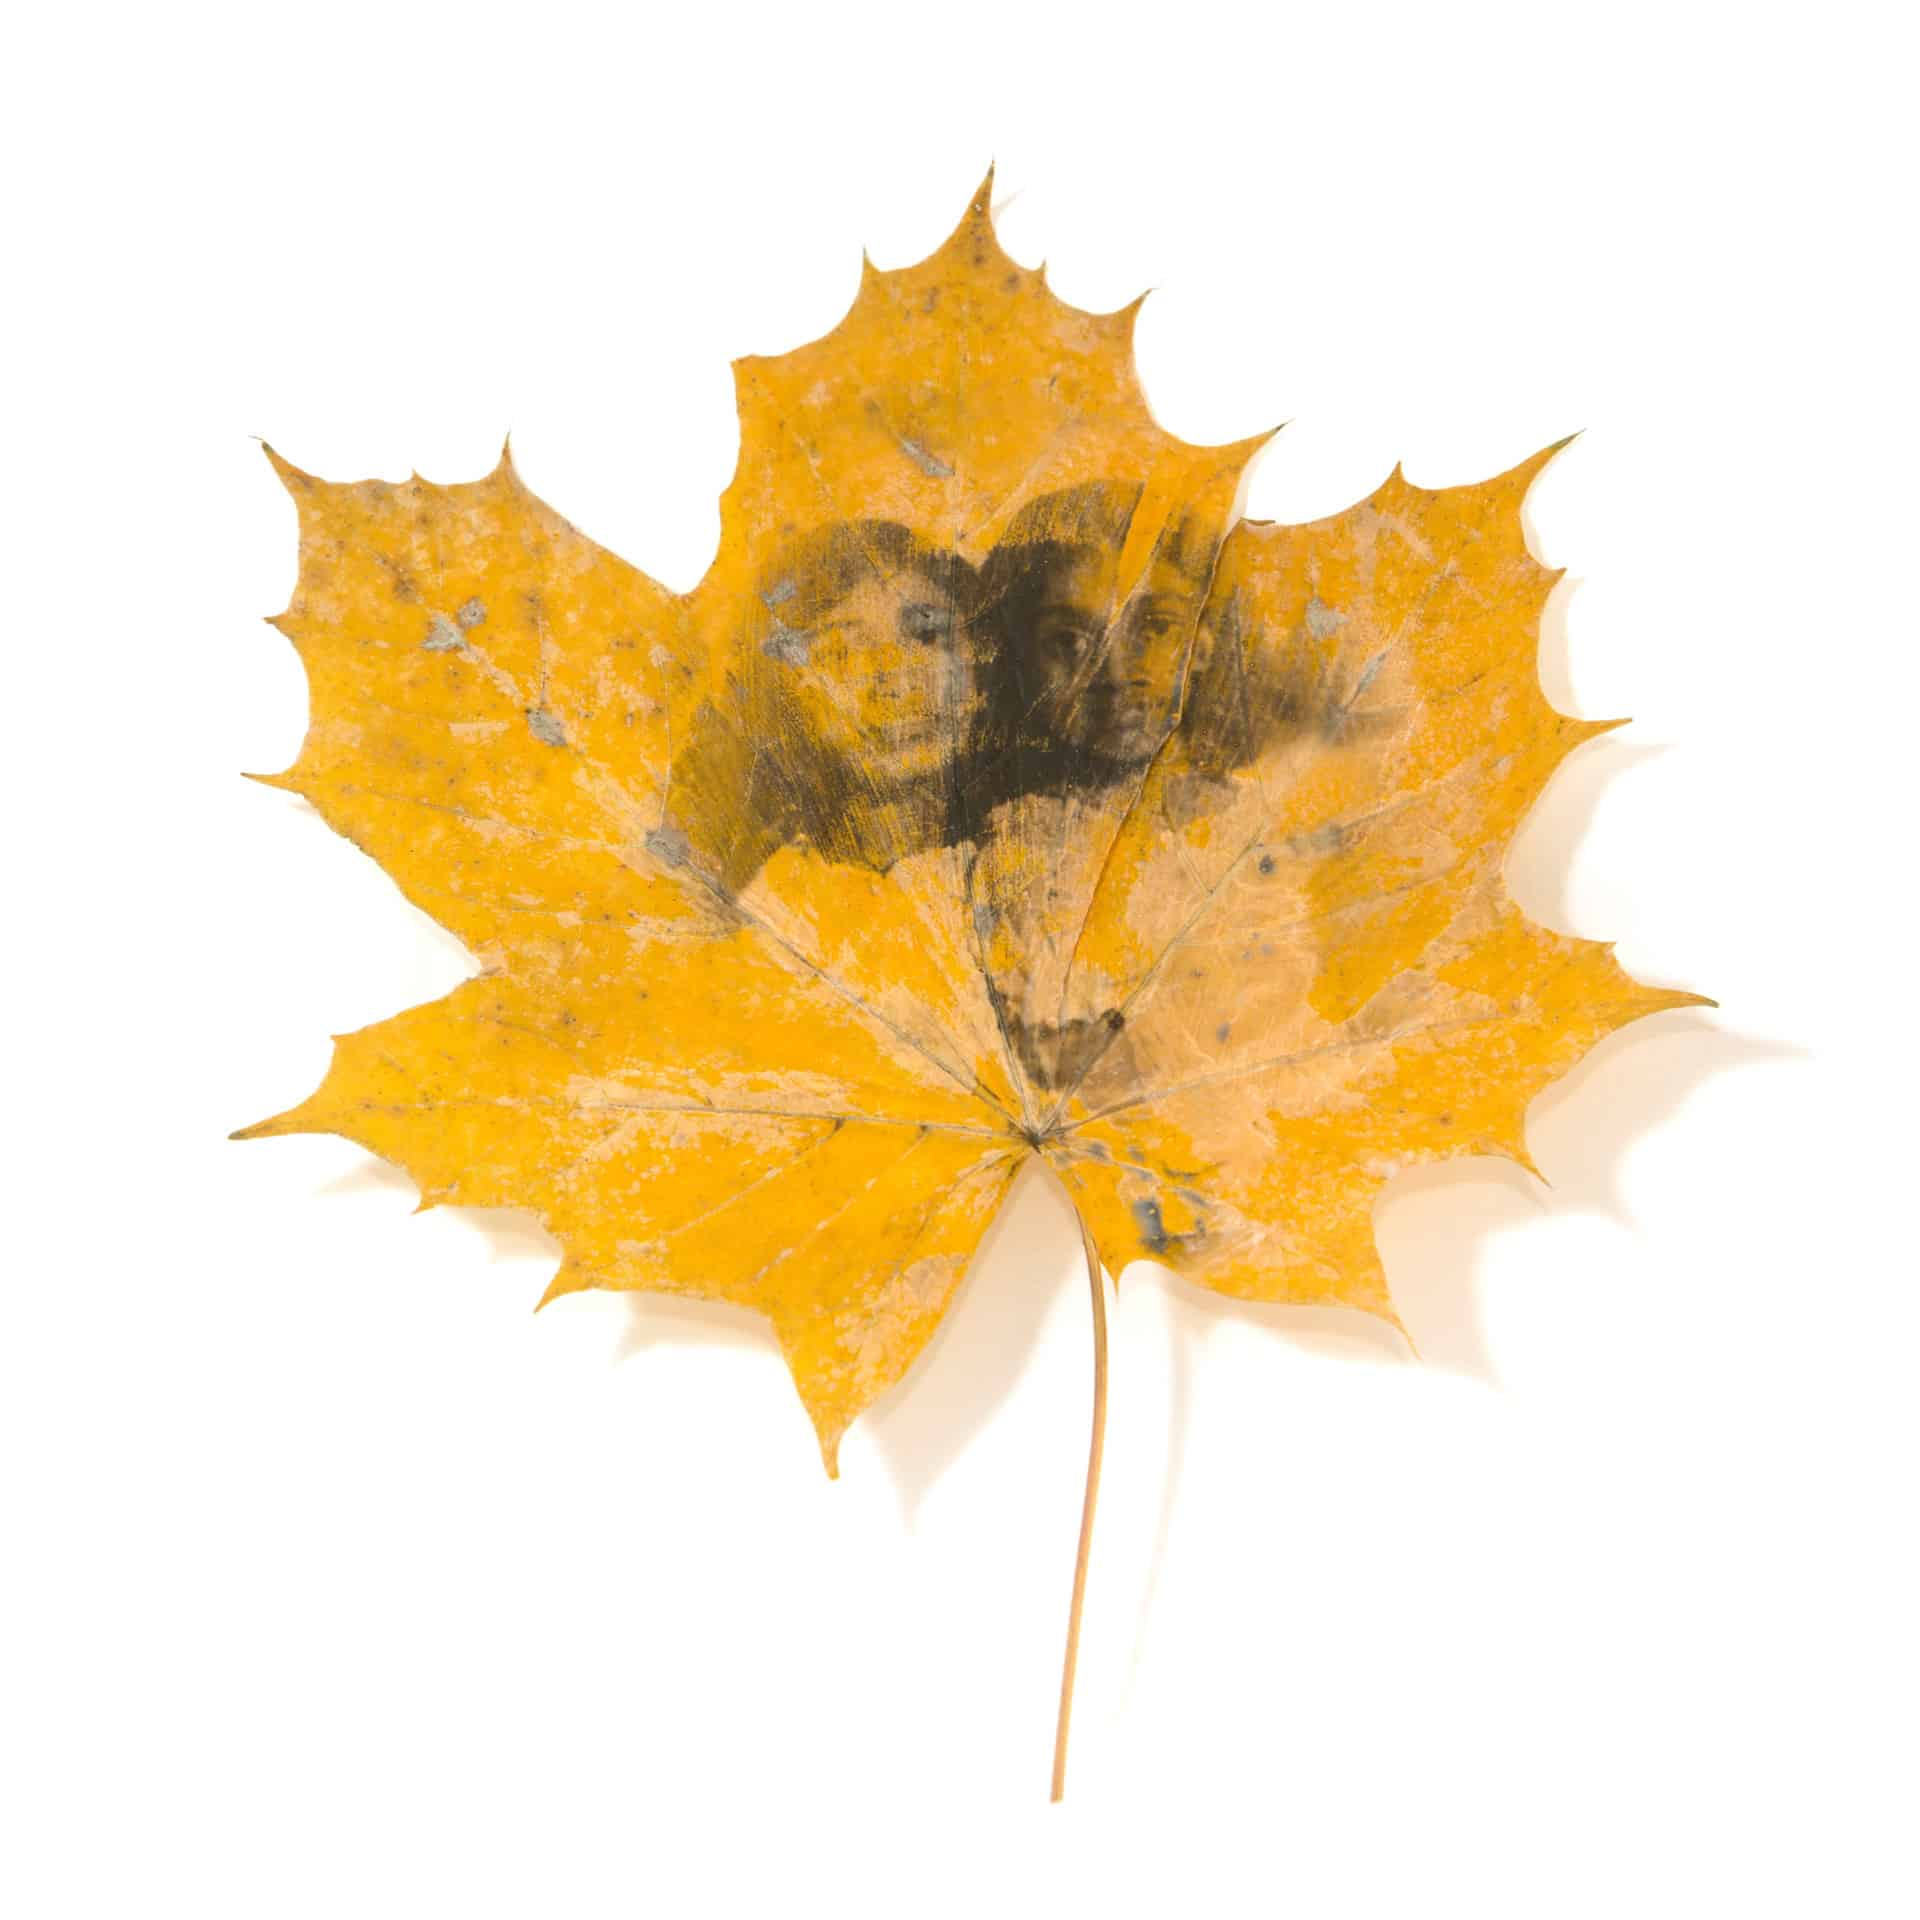 'Traces' Photograph printed onto leaf by Farhad Berahman. Commissioned as part of the Living Memory Project, 2020